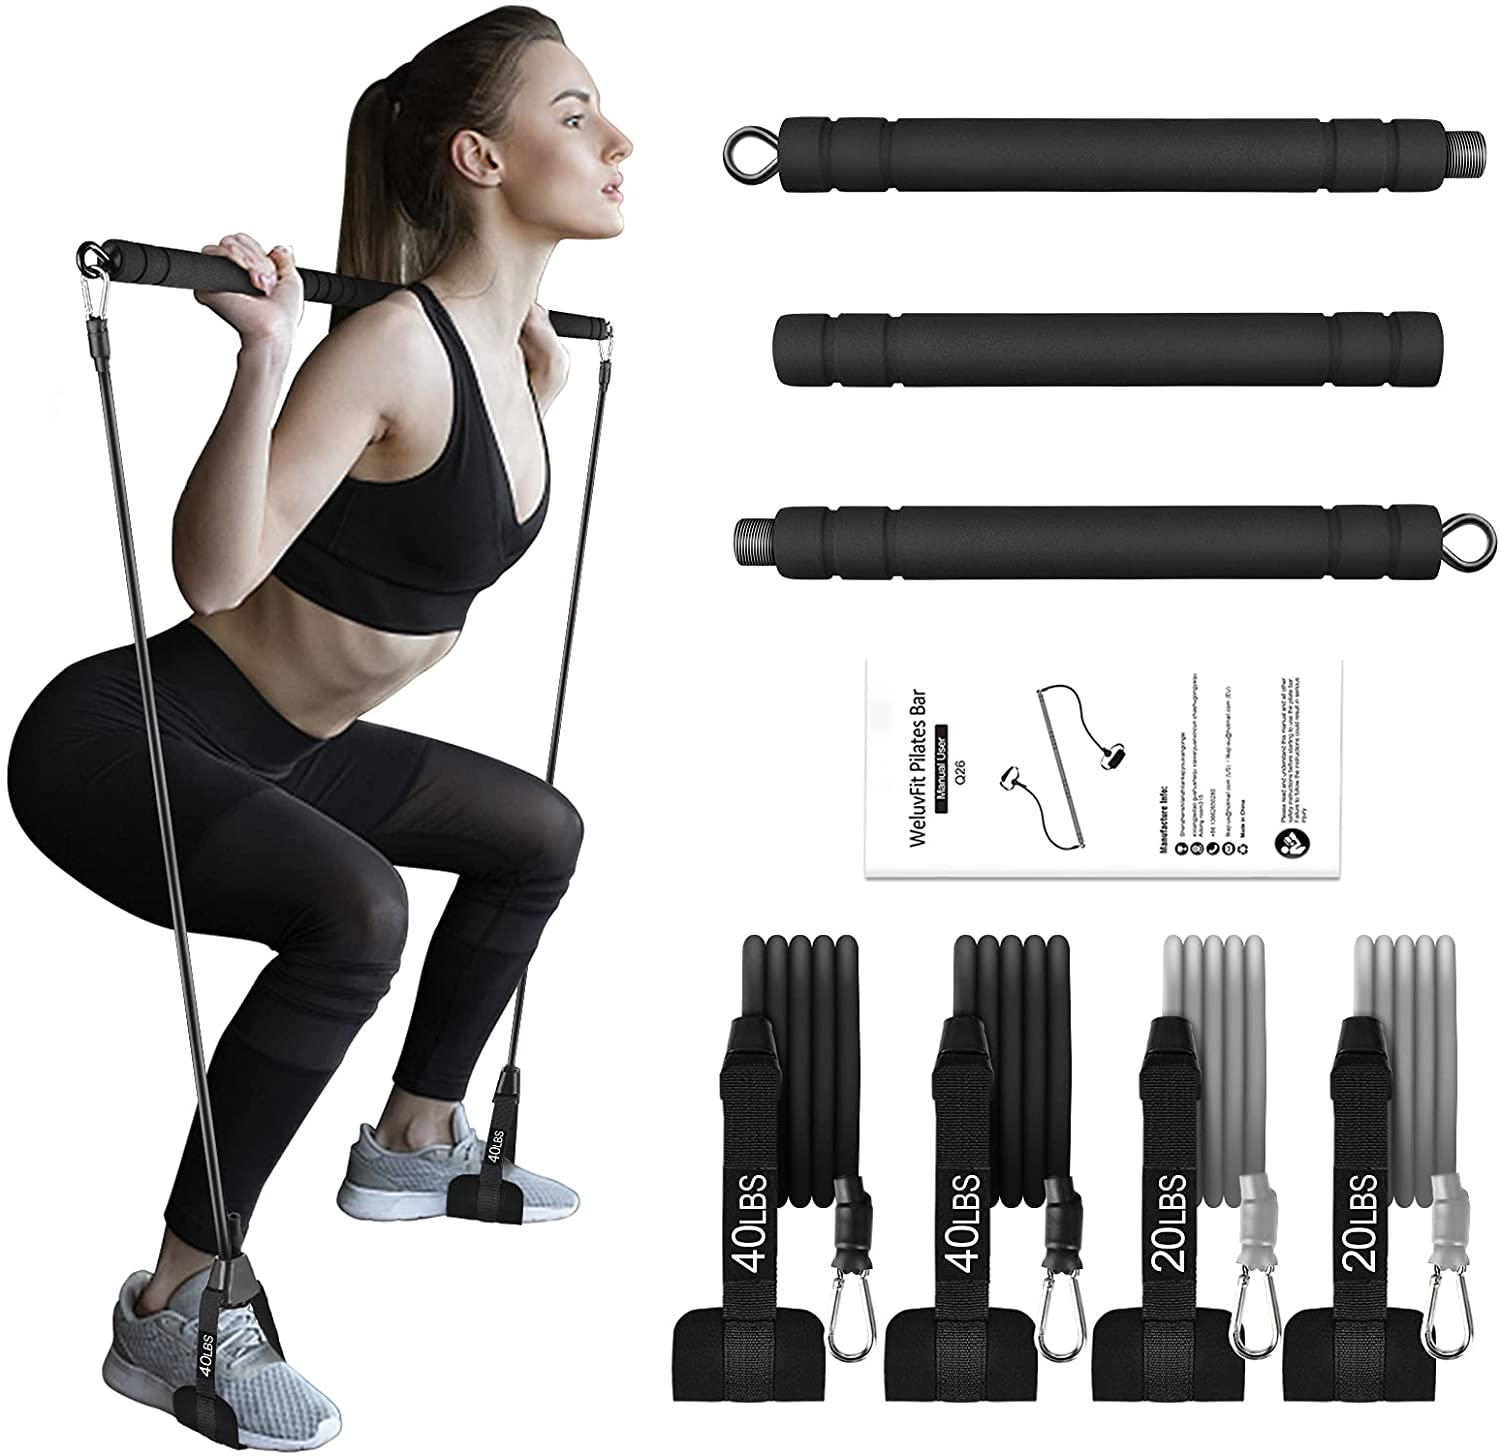 Pilates Bar Kit with Resistance Bands, WeluvFit Portable Exercise Fitness Equipment for Women & Men, Home Gym Workout 3-Section Stick Squat Yoga Pilates Flexbands Kit for Full Body Shaping